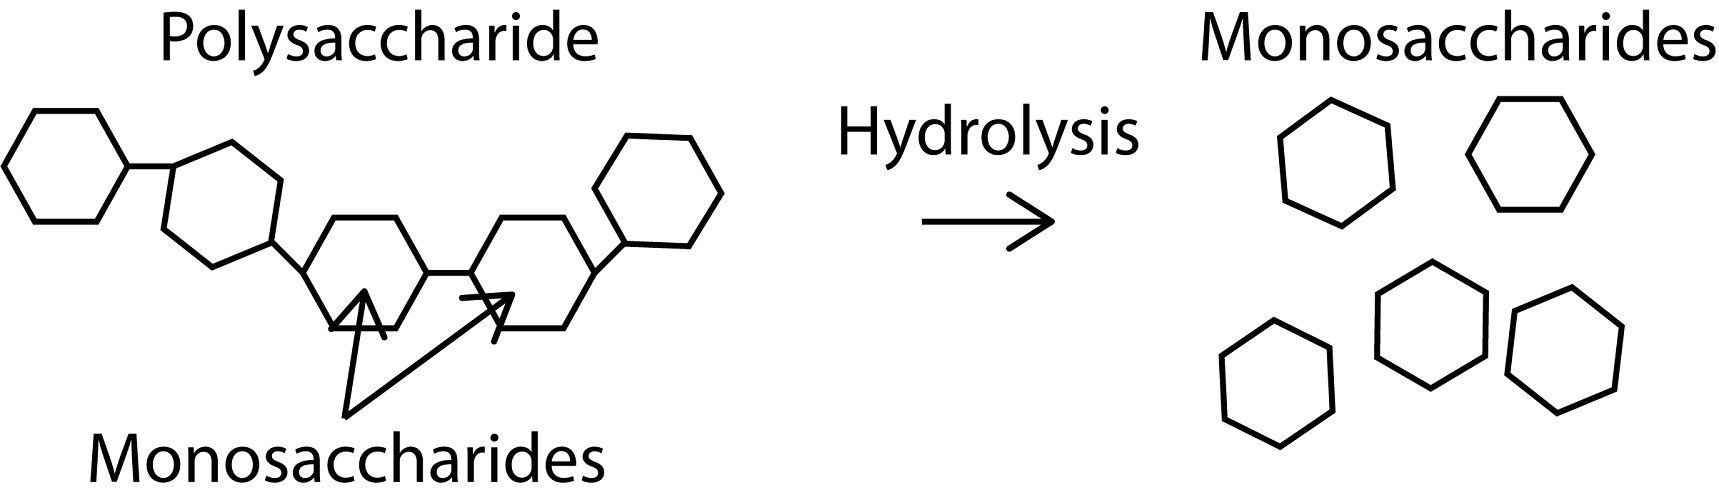 Carbohydrates synthesis classification and uses.